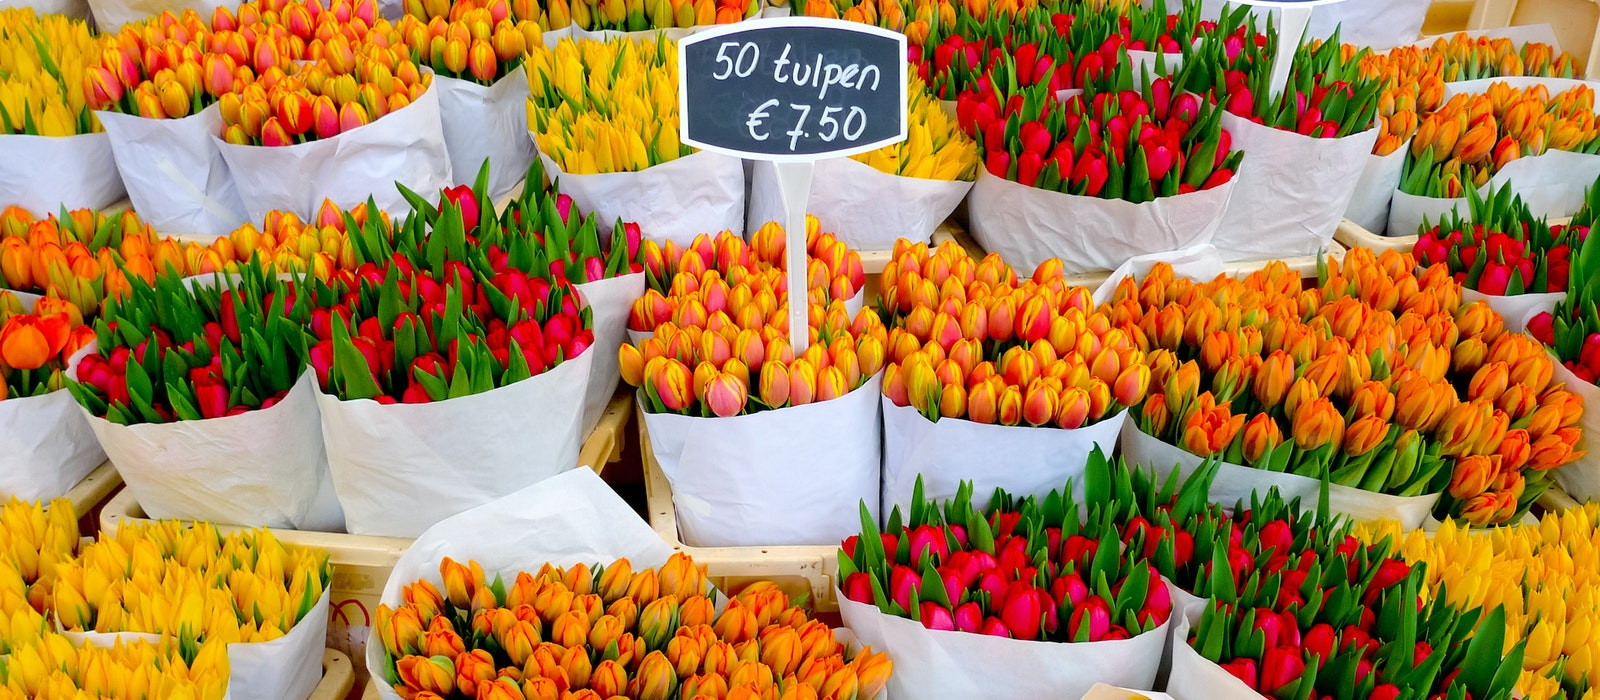 The best time to see tulip fields in Amsterdam is from mid-April to early May.